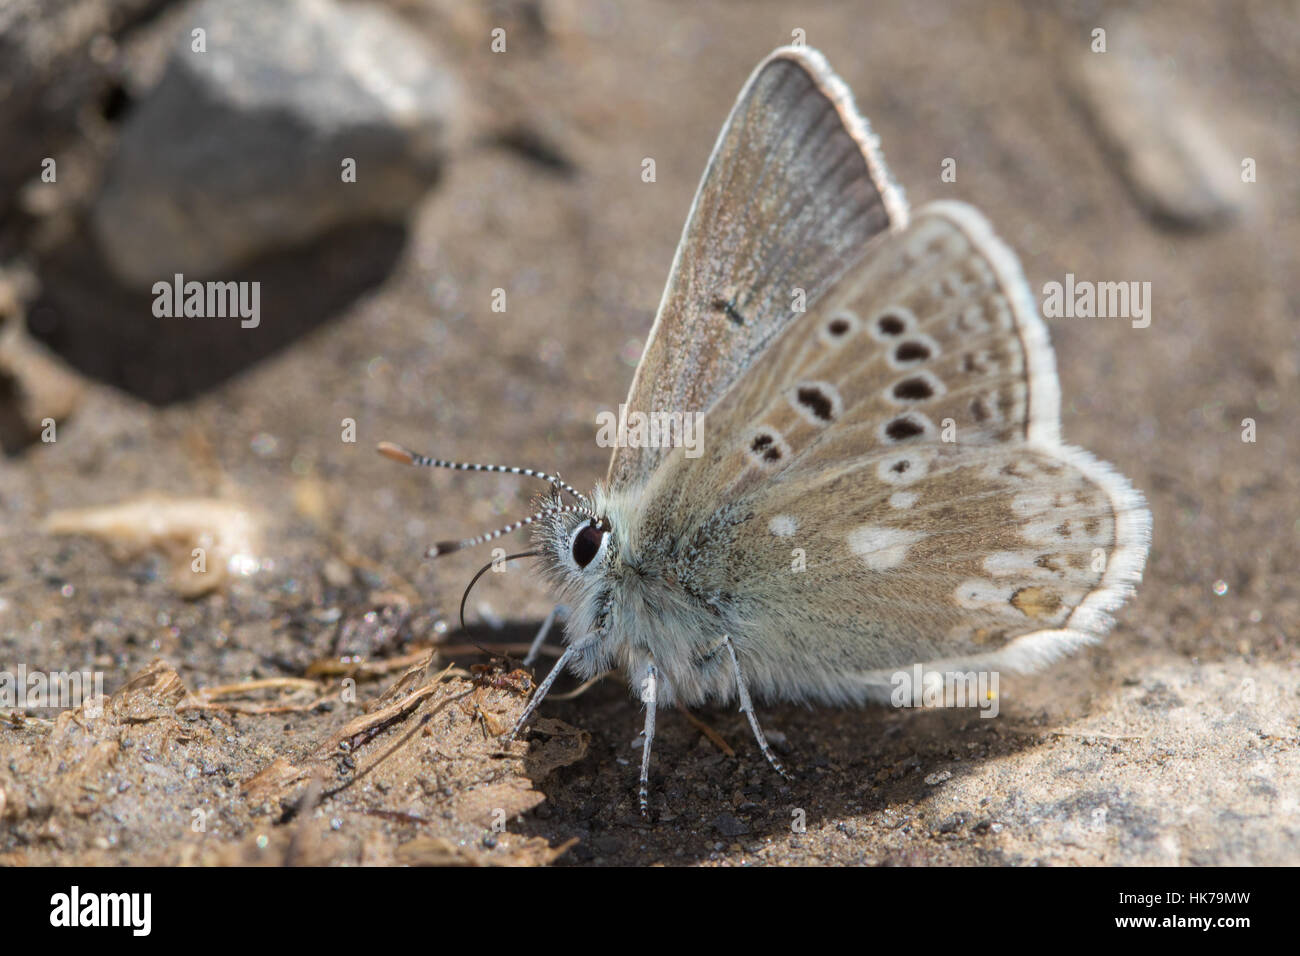 Glandon Blue (Plebejus glandon) papillon se nourrit de minéraux à partir de sols humides Photo Stock